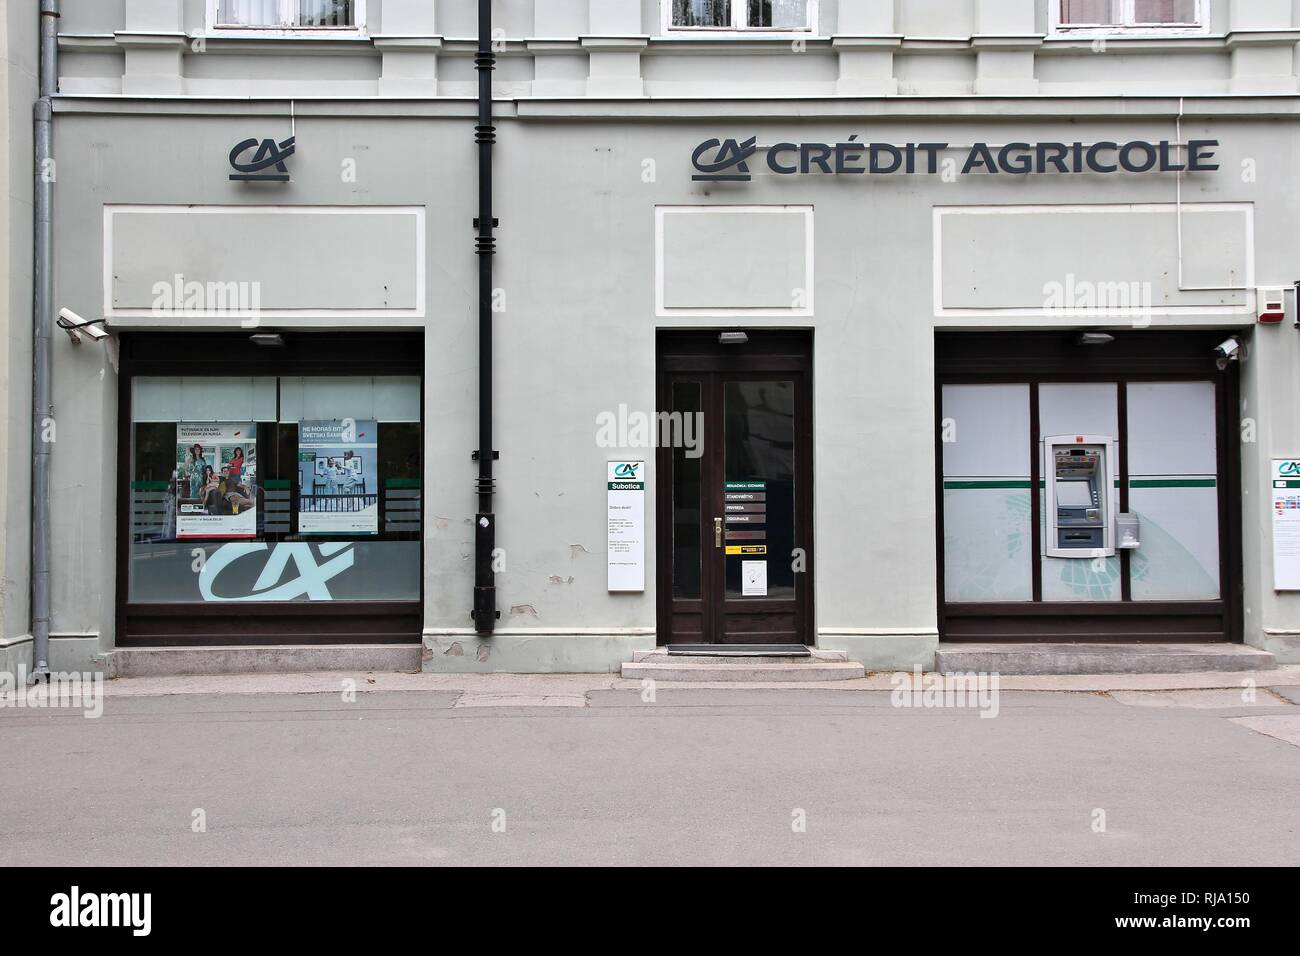 SUBOTICA, SERBIA - AUGUST 12: Credit Agricole bank branch on August 12, 2012 in Subotica, Serbia. CA is the largest retail banking group in France, an - Stock Image